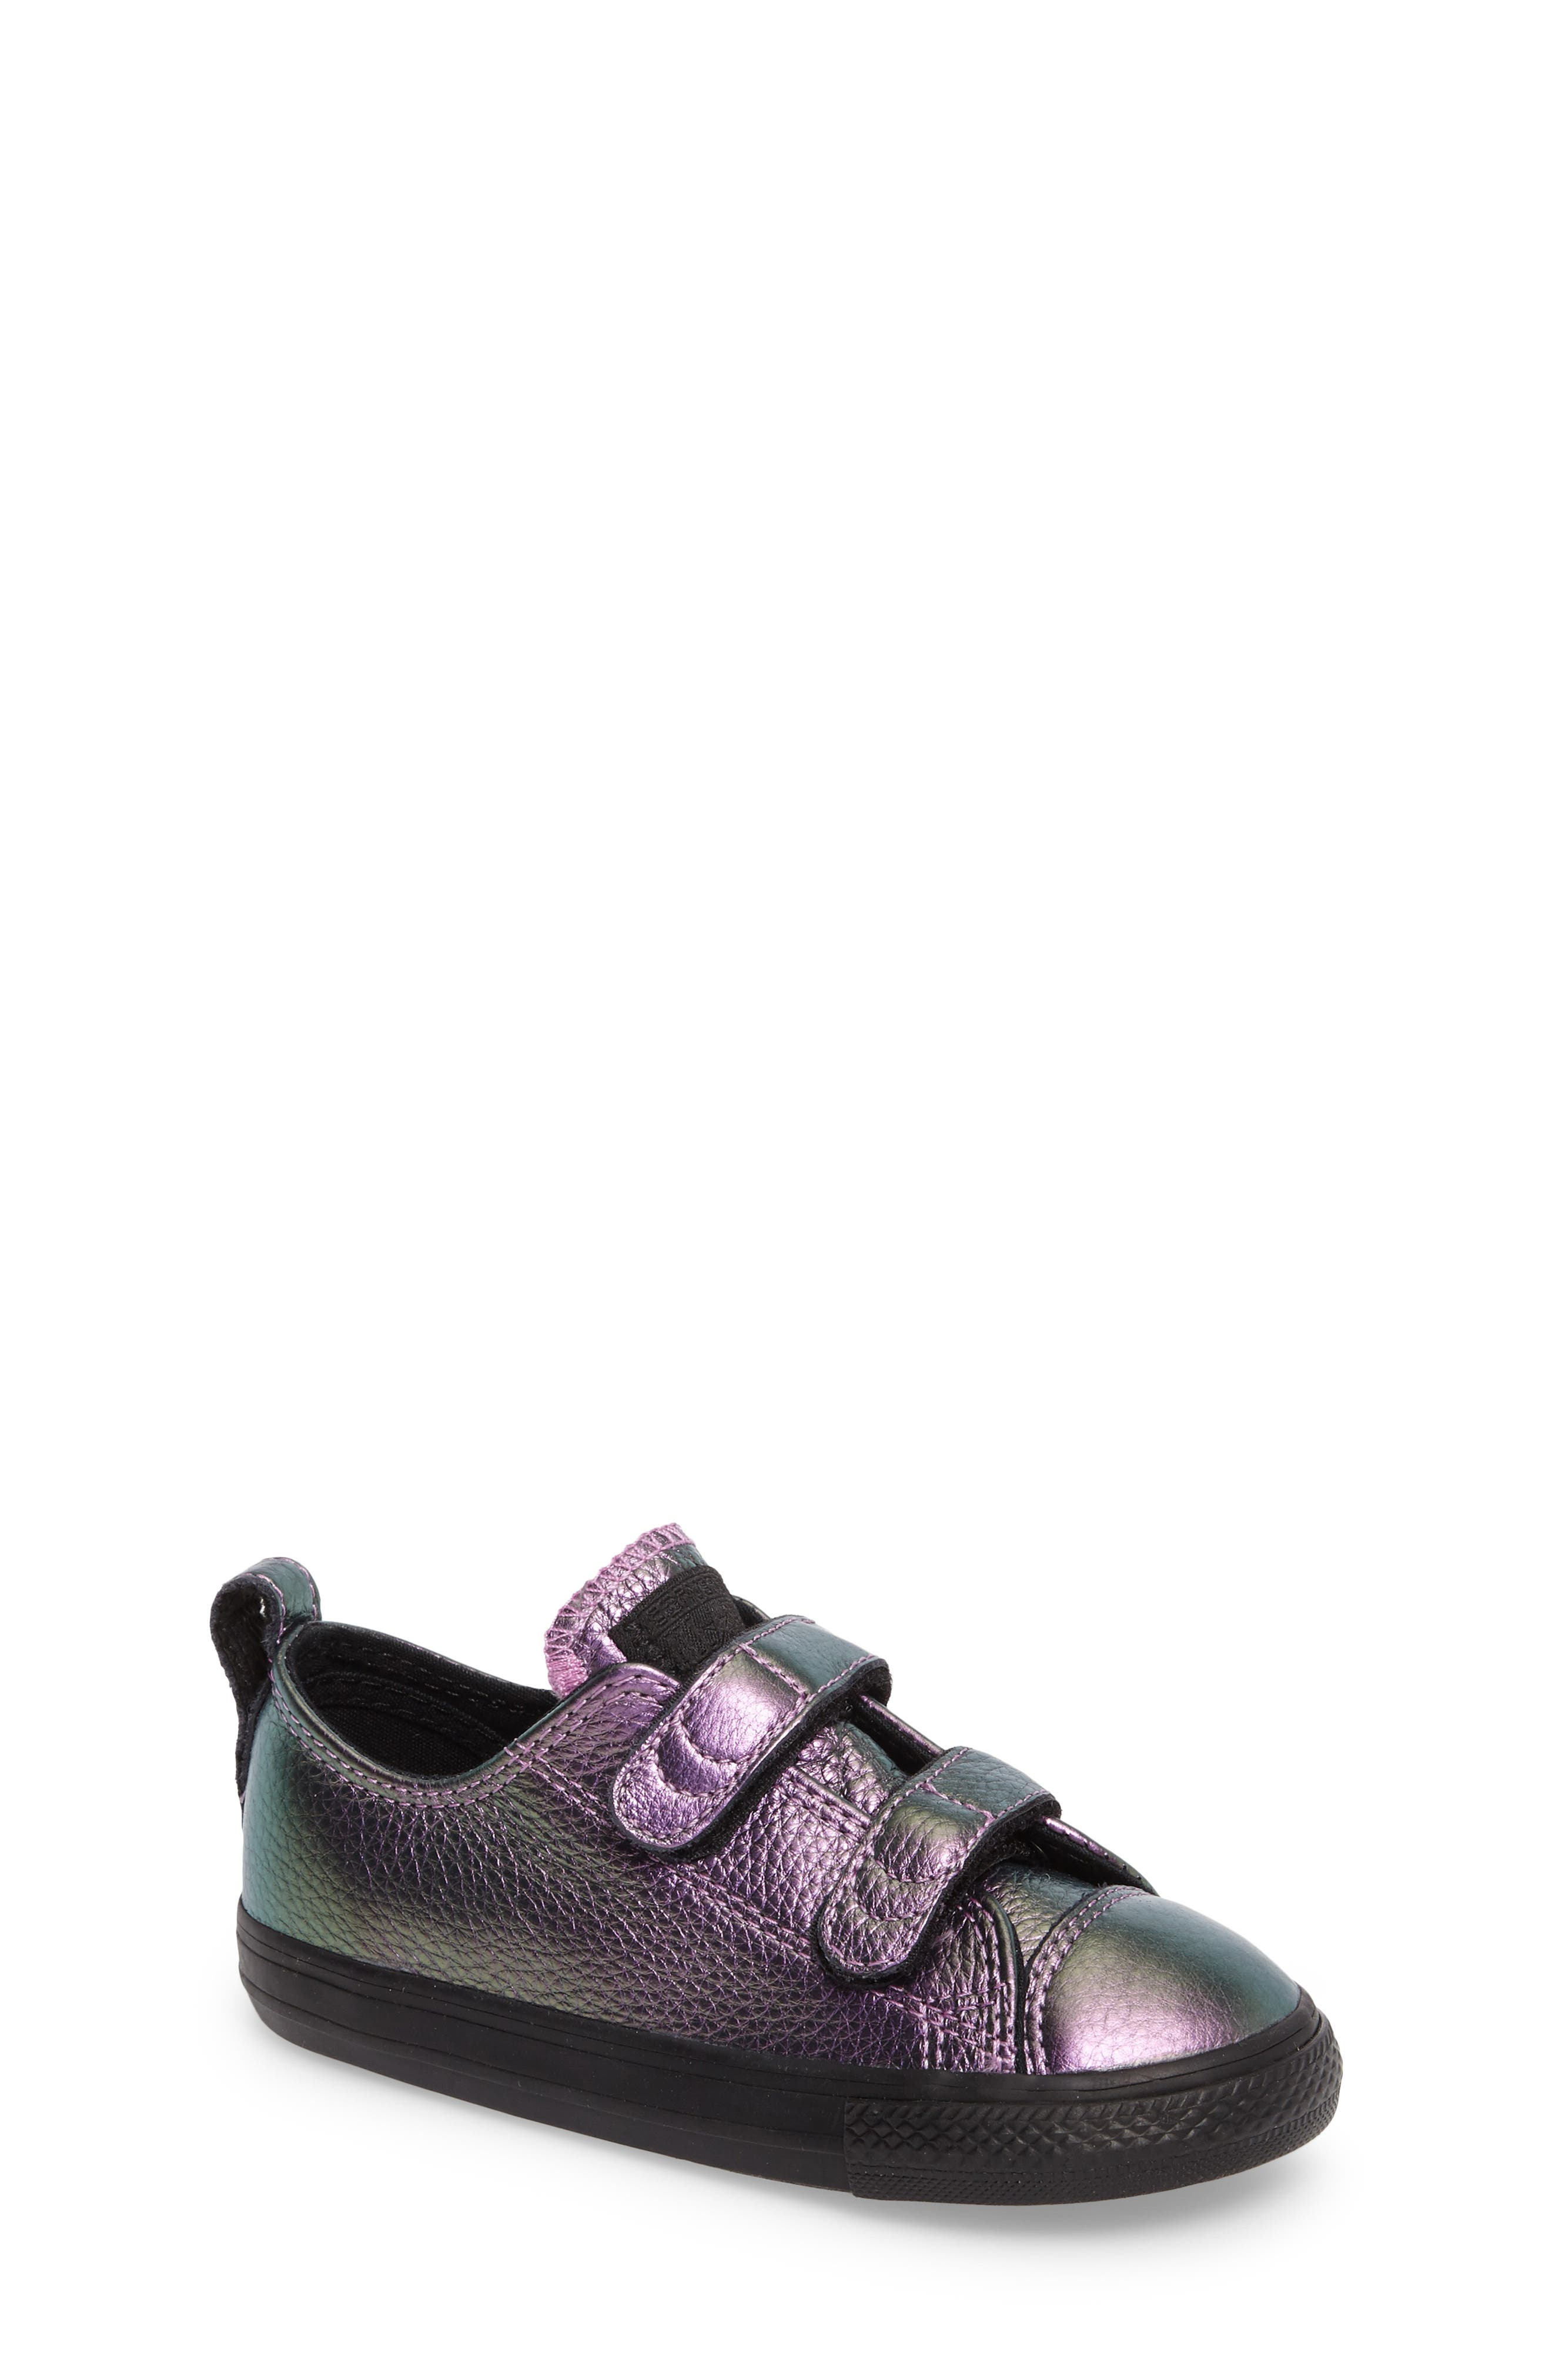 Chuck Taylor<sup>®</sup> All Star<sup>®</sup> Iridescent Leather Low Top Sneaker,                             Main thumbnail 1, color,                             Violet Leather